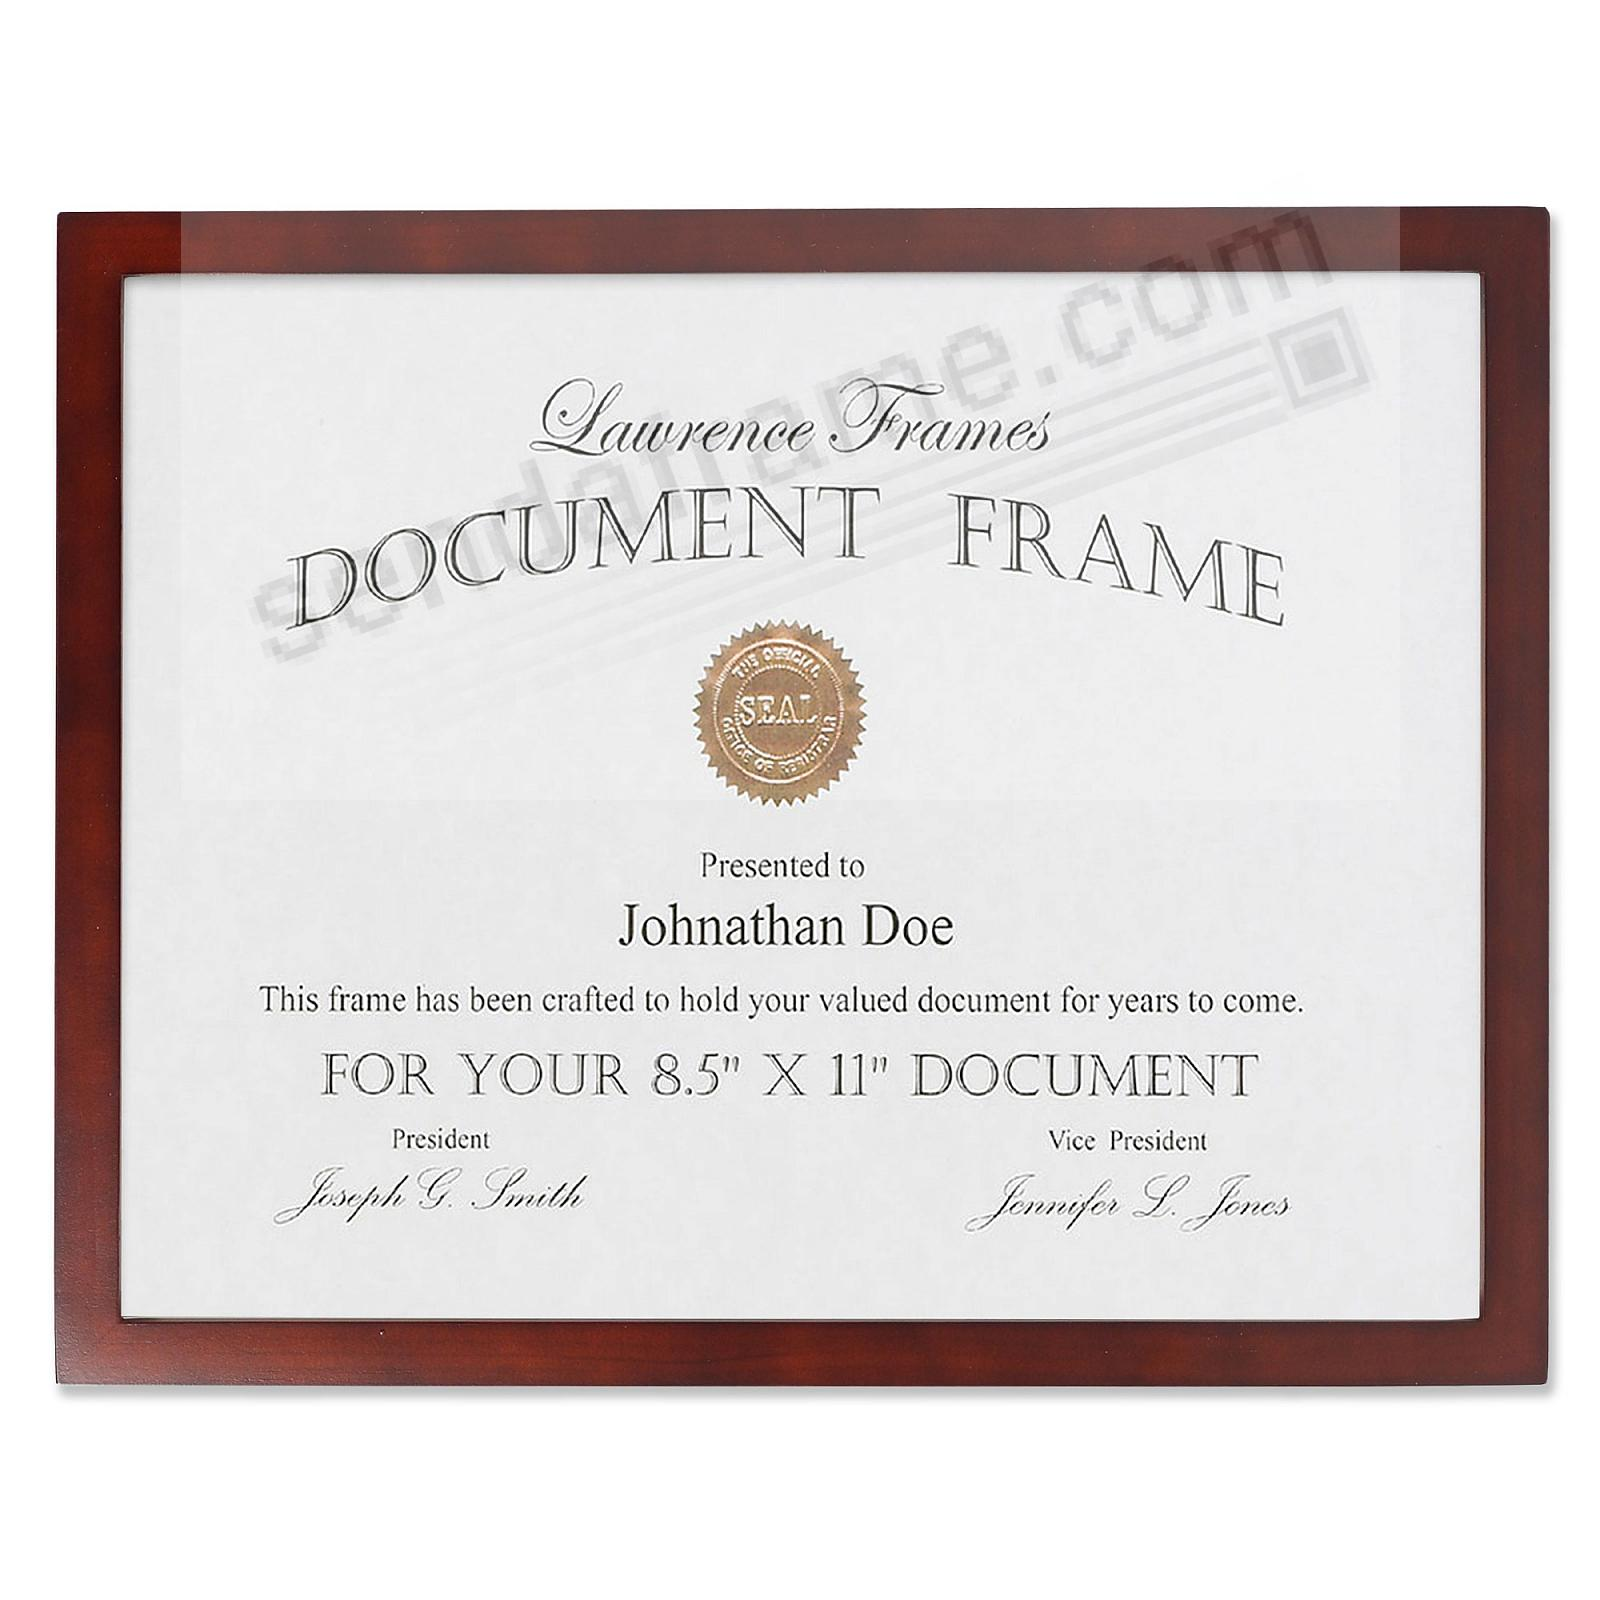 ESPRESSO-Brown Square-Corner certificate frame by Lawrence®